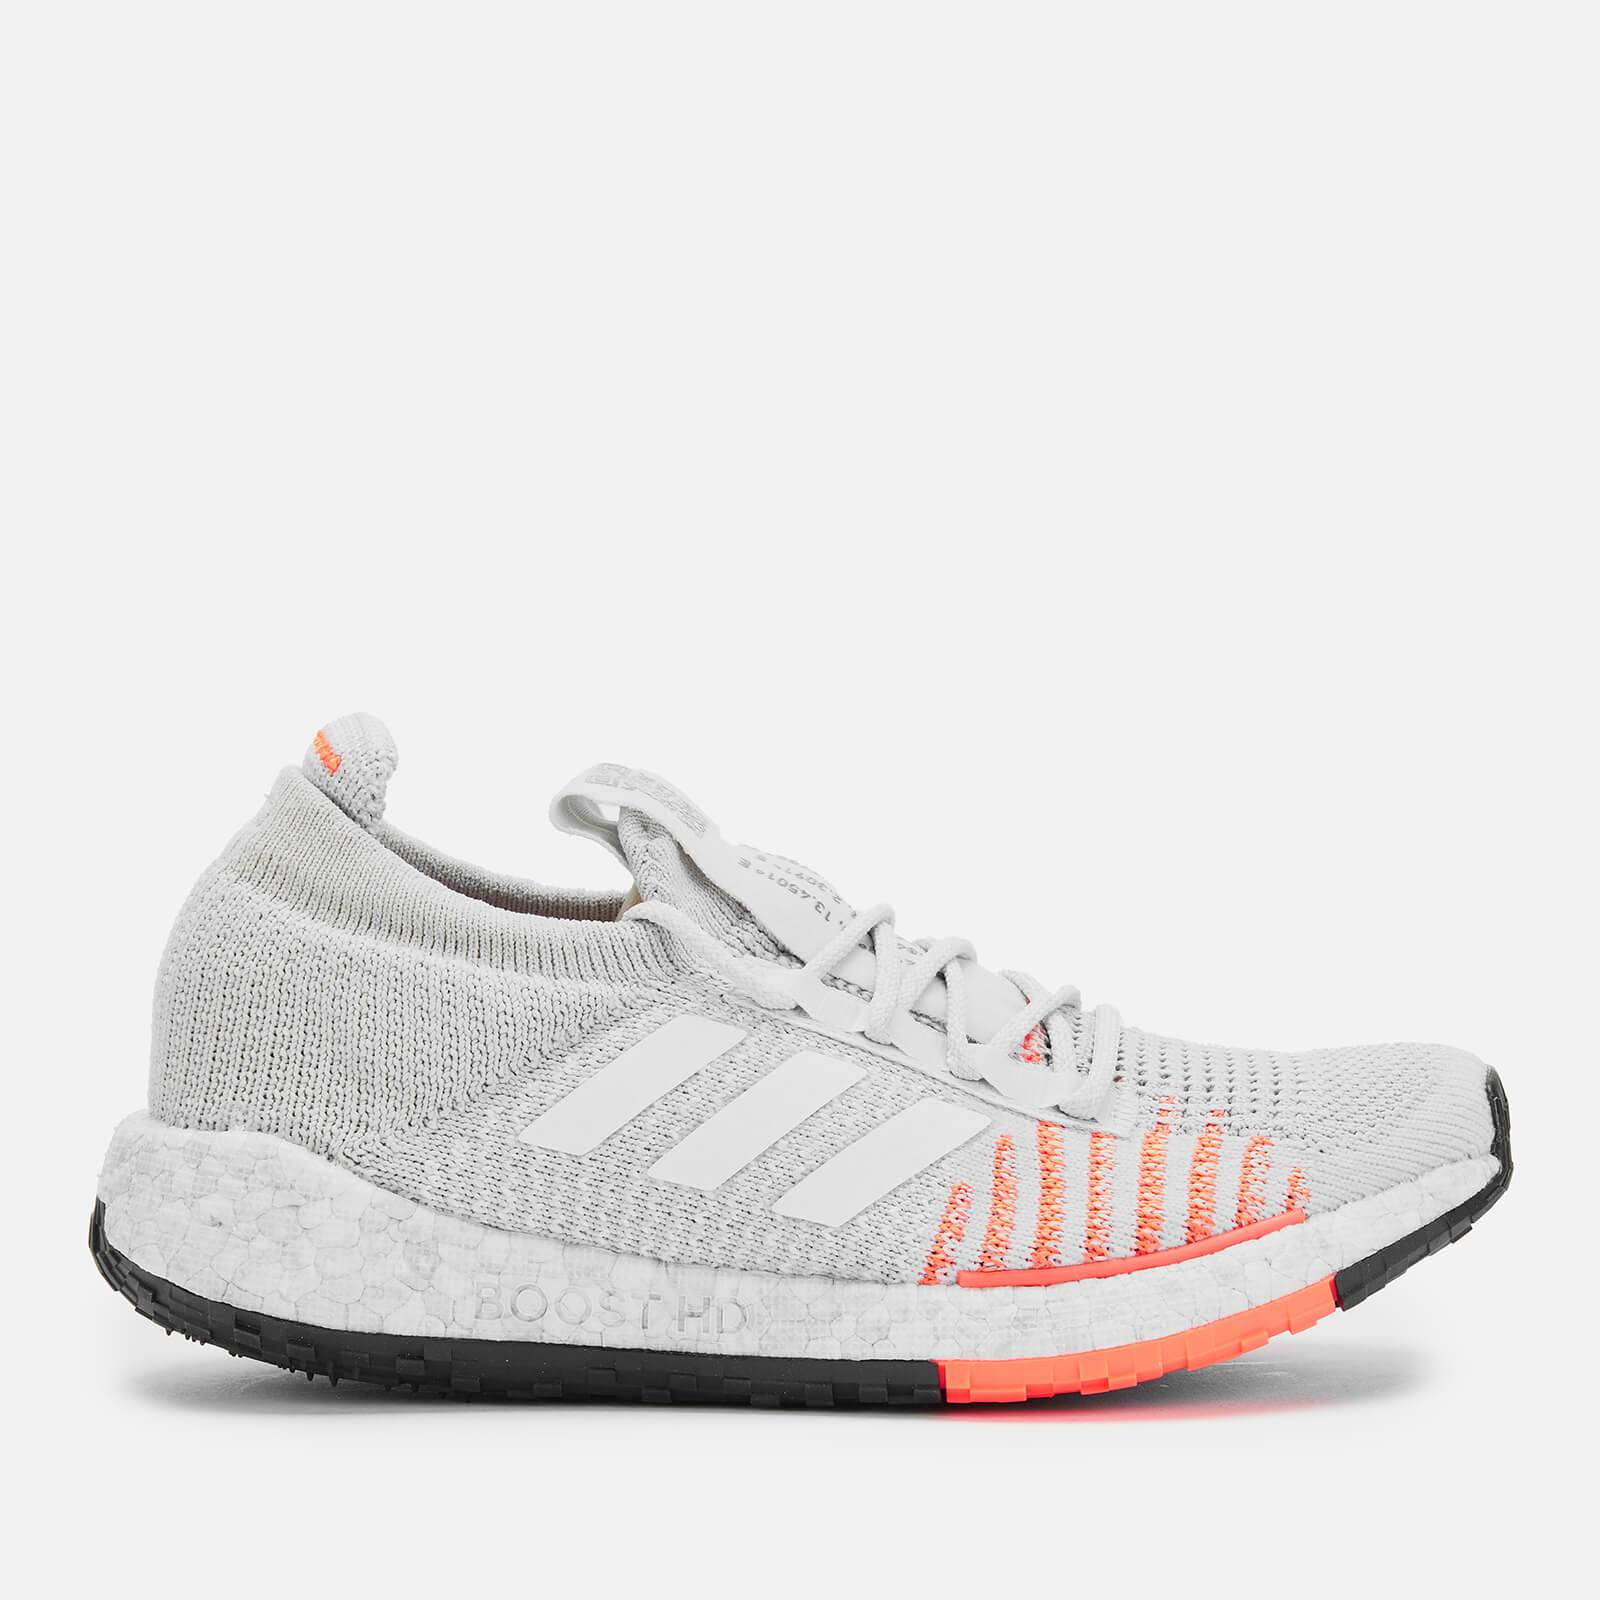 adidas Women's Pulse Boost HD Trainers - Grey/Orange - UK 4 - Grey